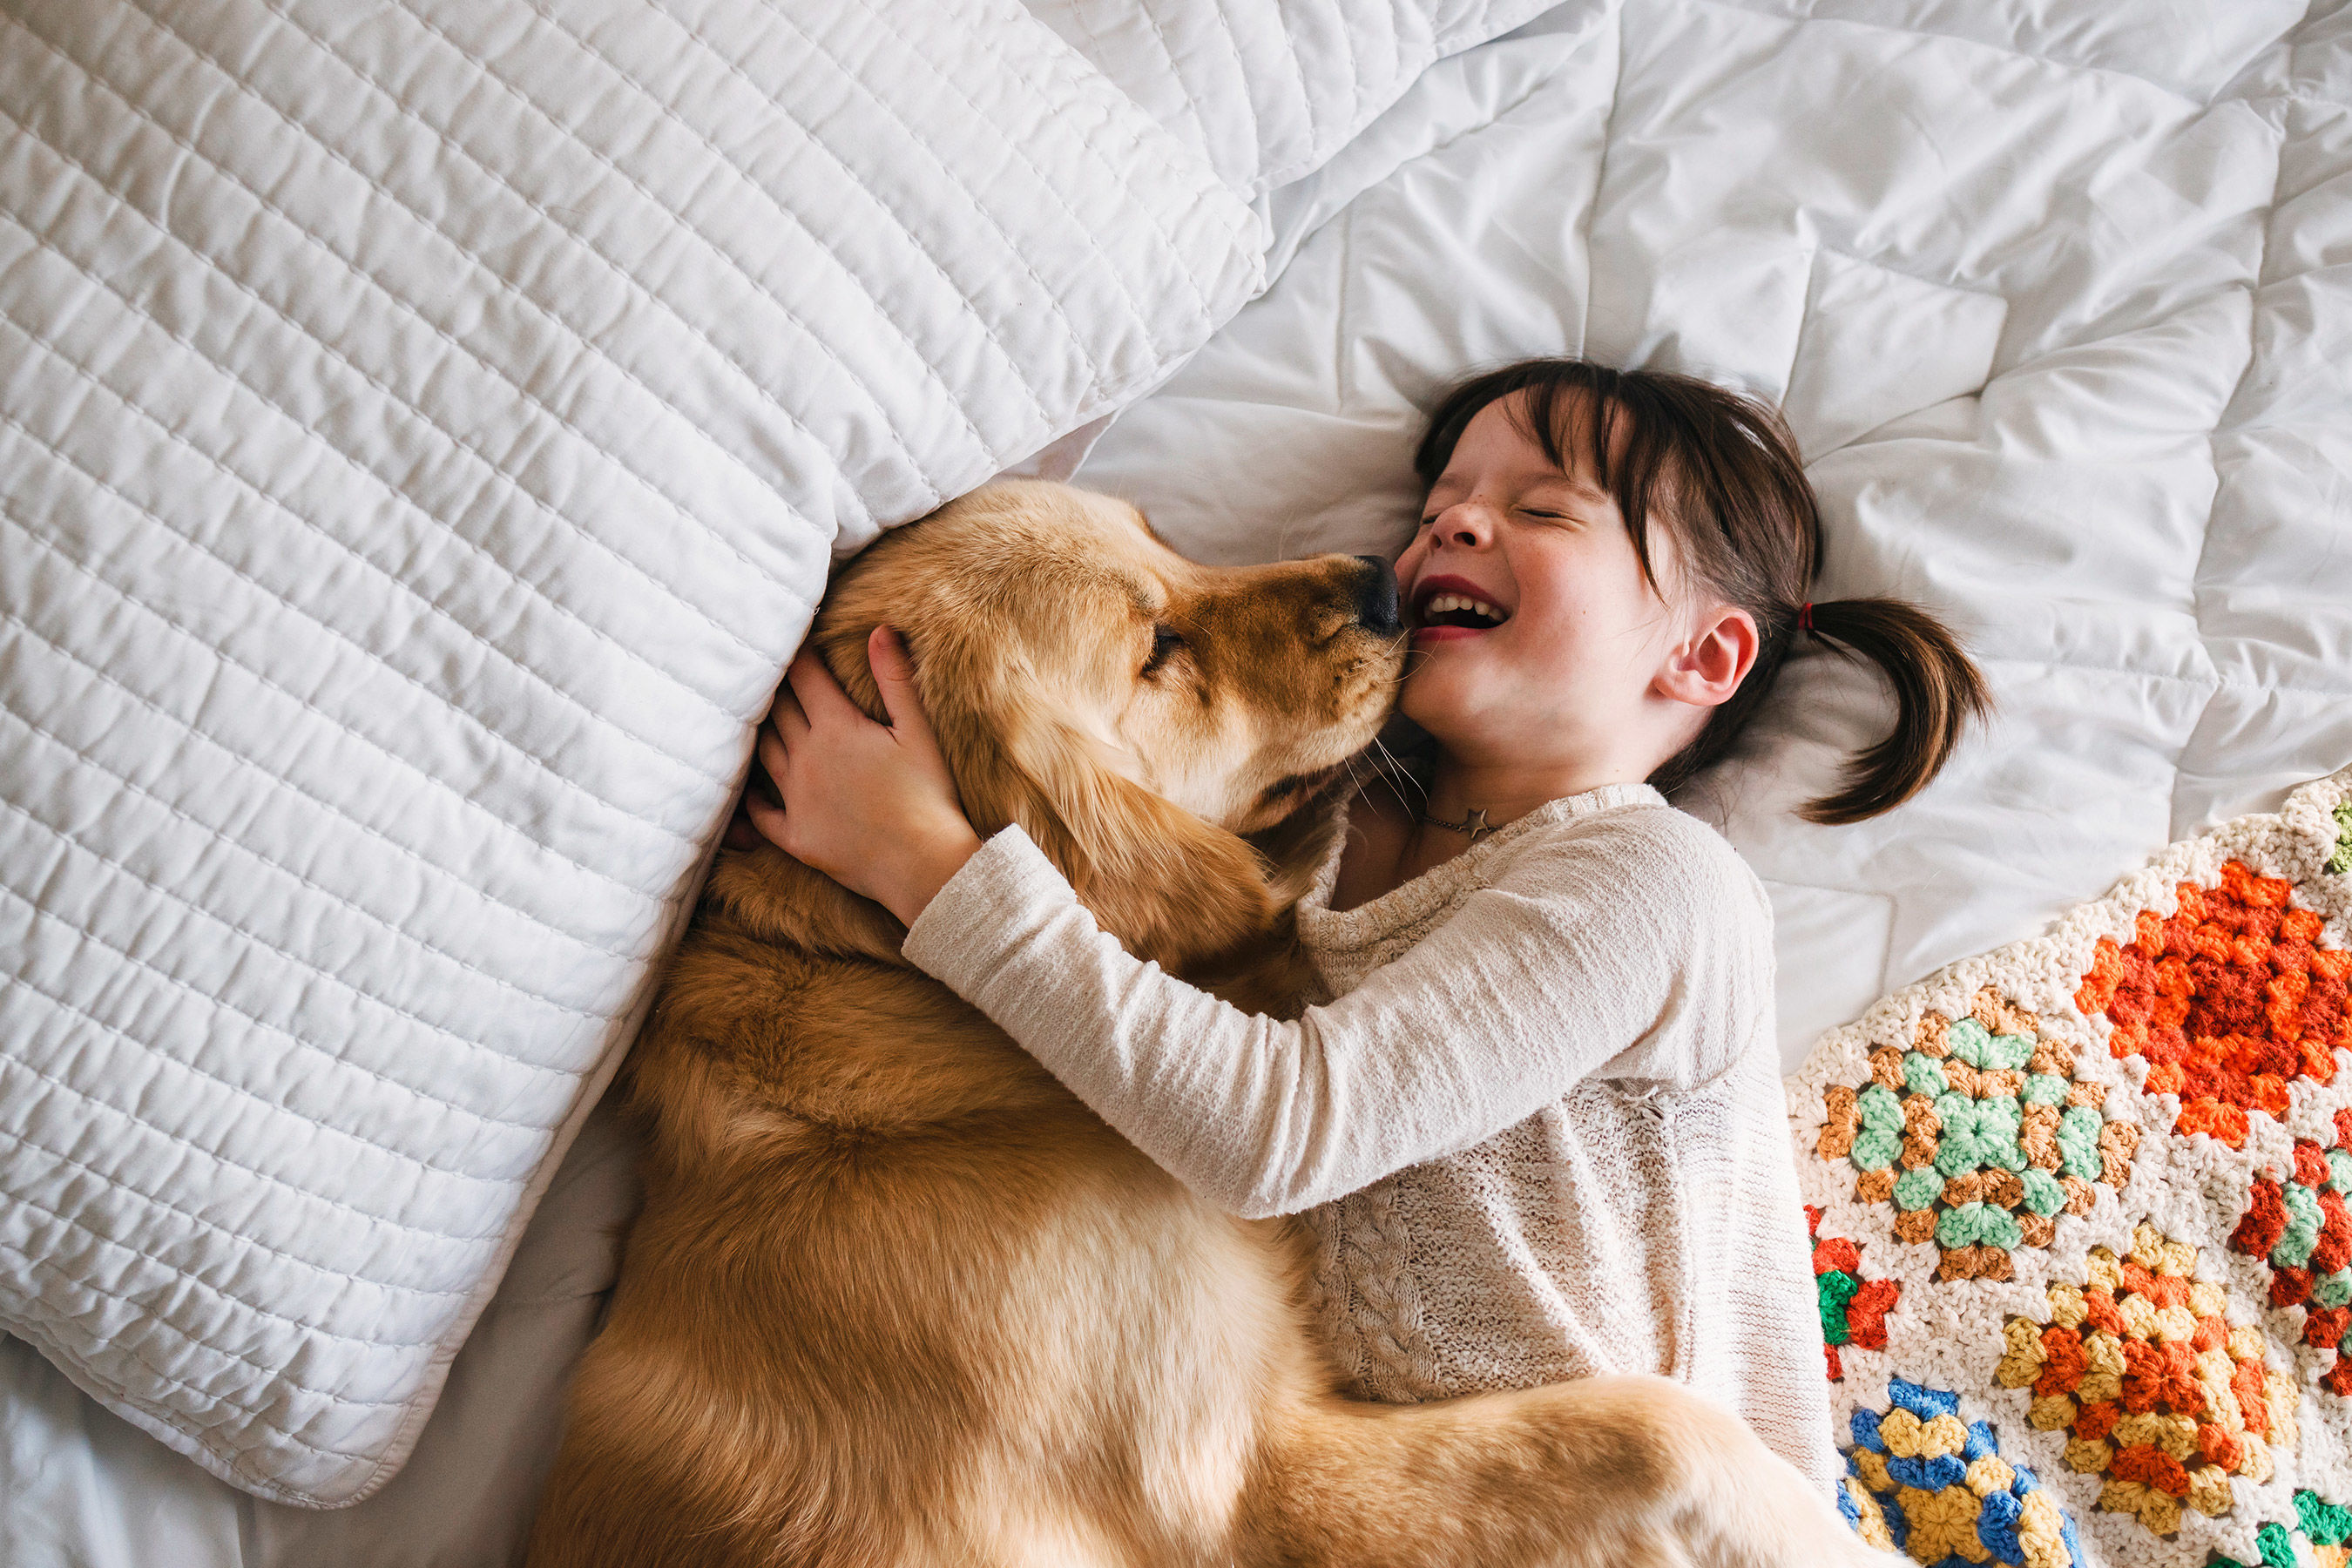 Want to Protect Your Kids from Allergies? Study Says Get a Dog ... or Two